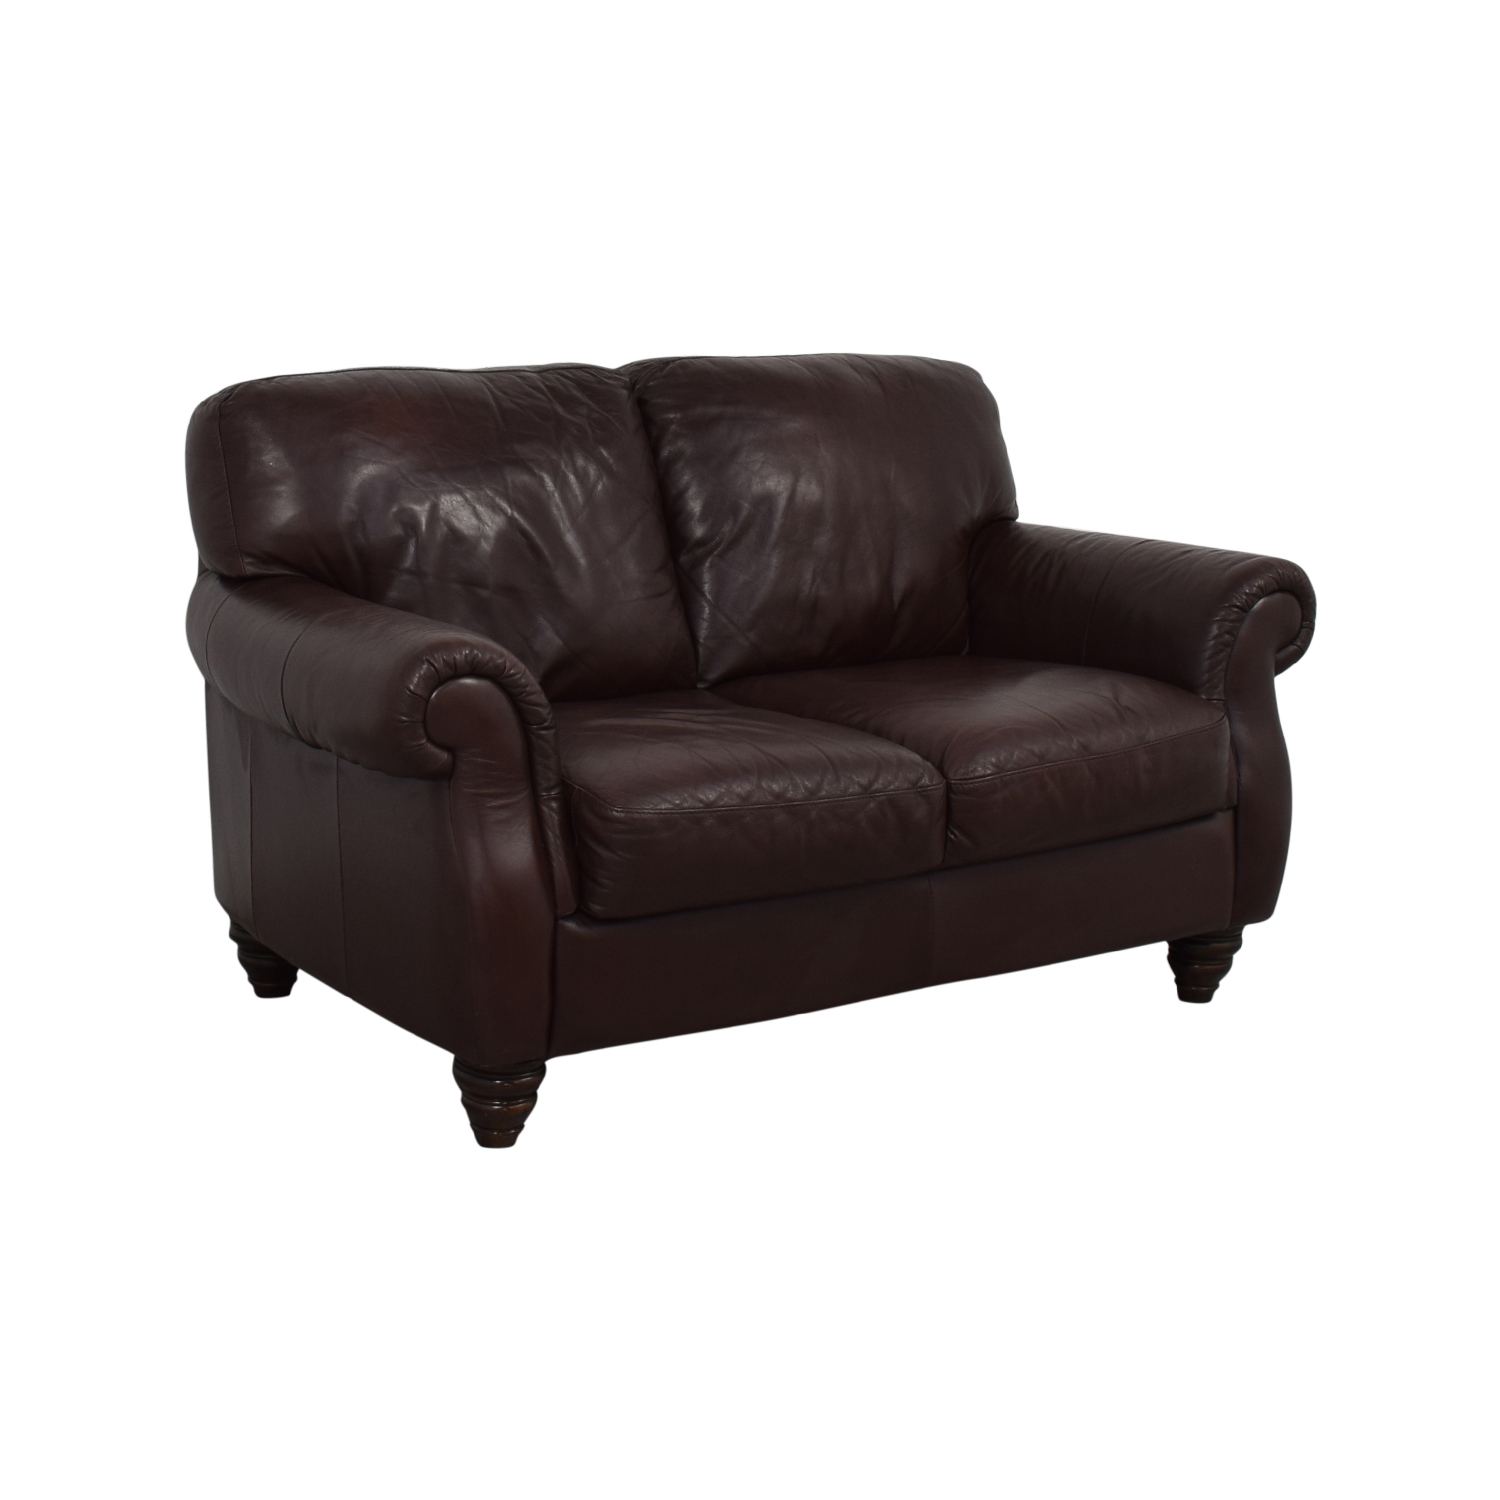 Fortunoff Italia Fortunoff Brown Two-Cushion Love Seat dimensions